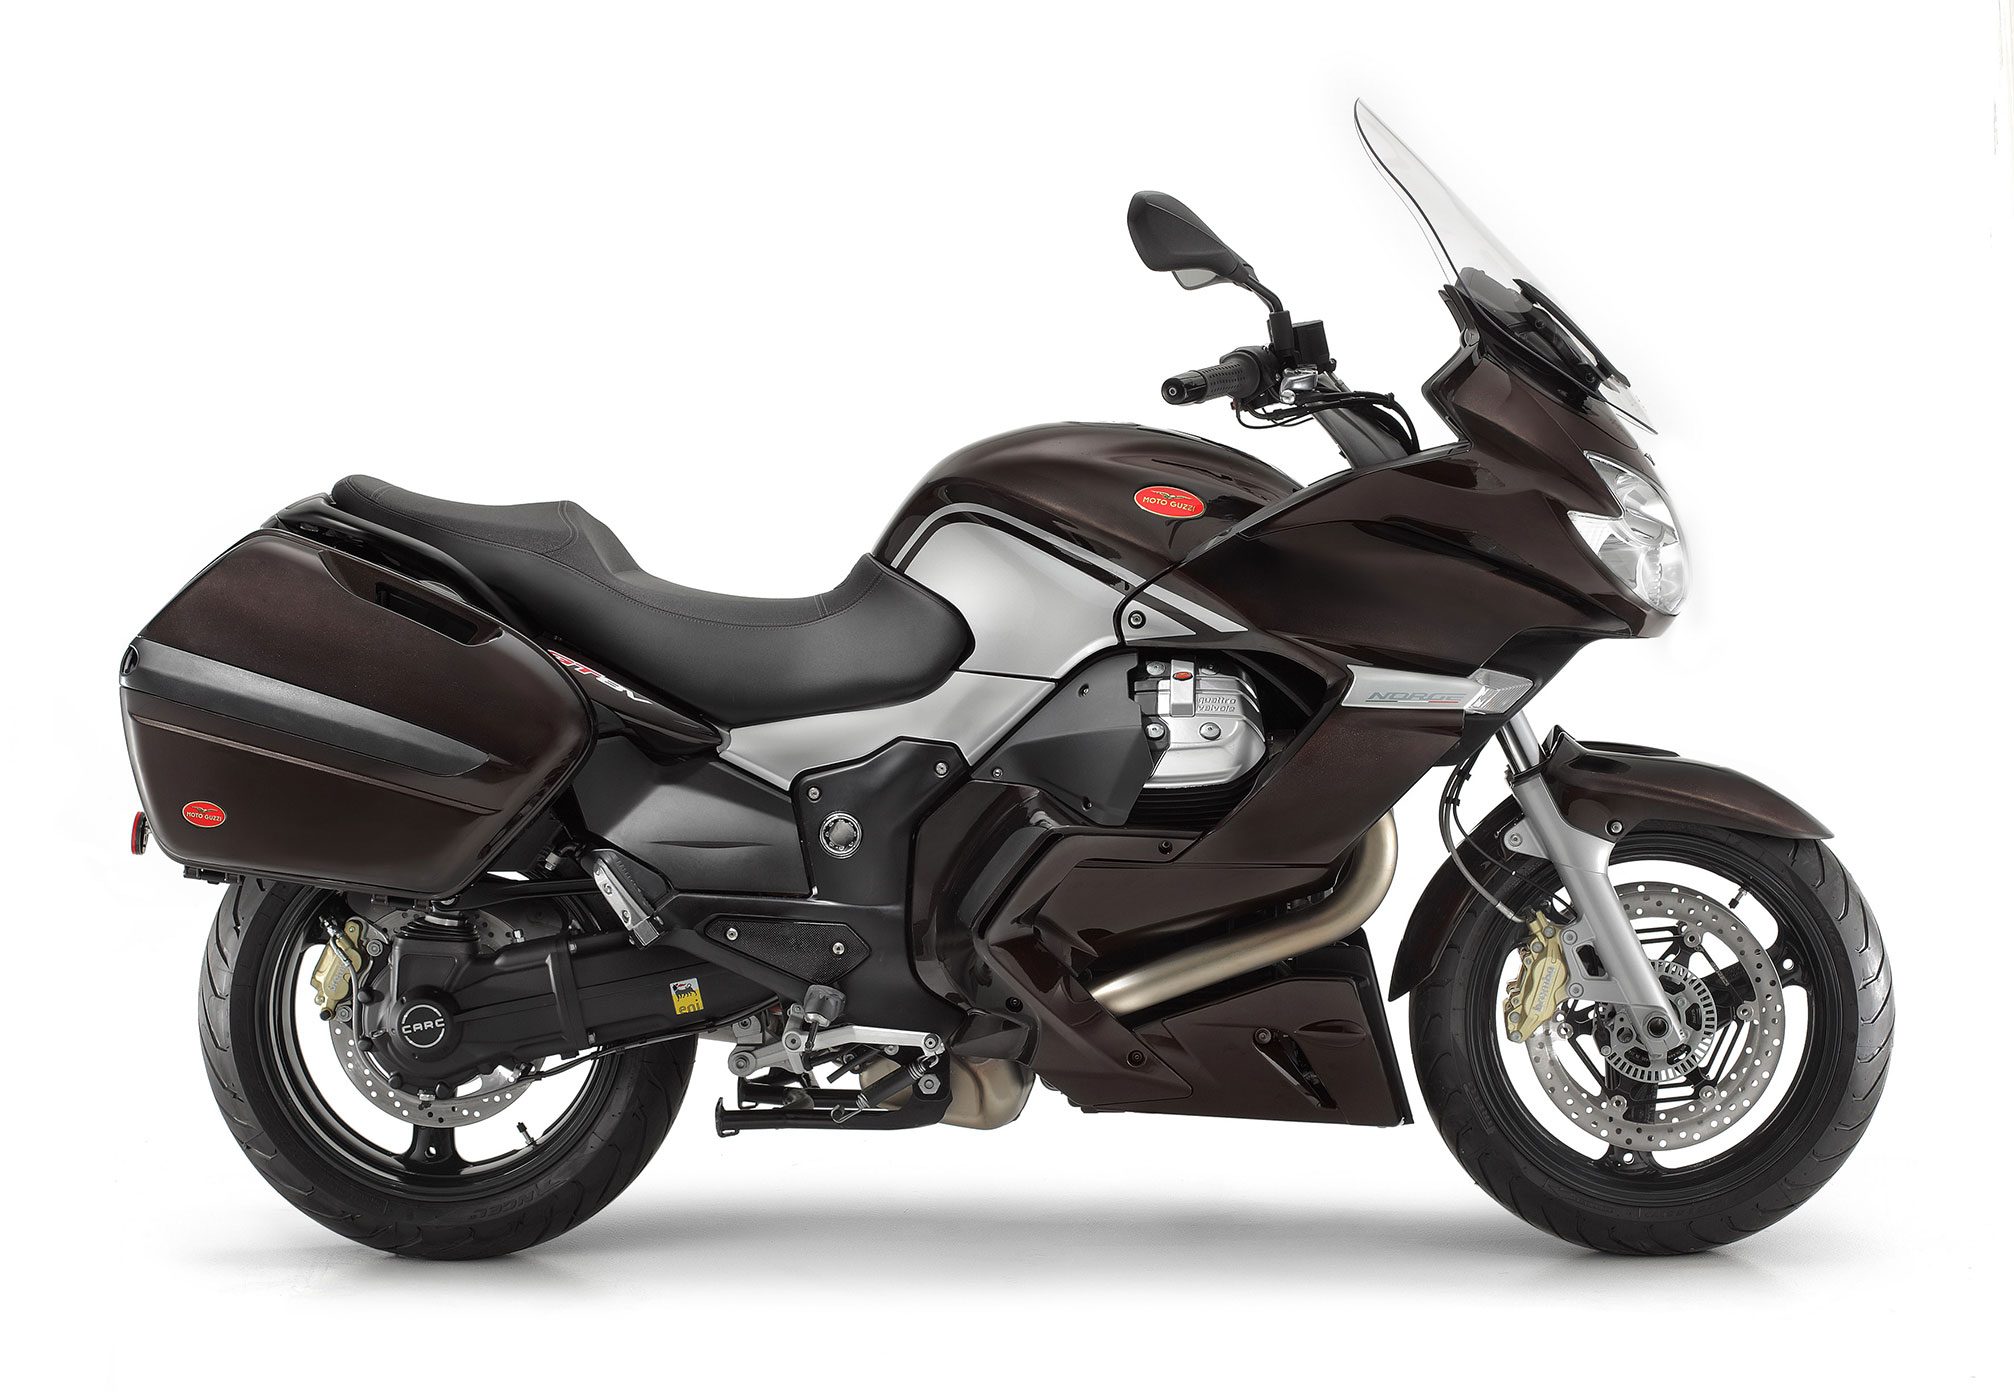 2015 Moto Guzzi Griso 8V Special Edition Shows Aesthetic